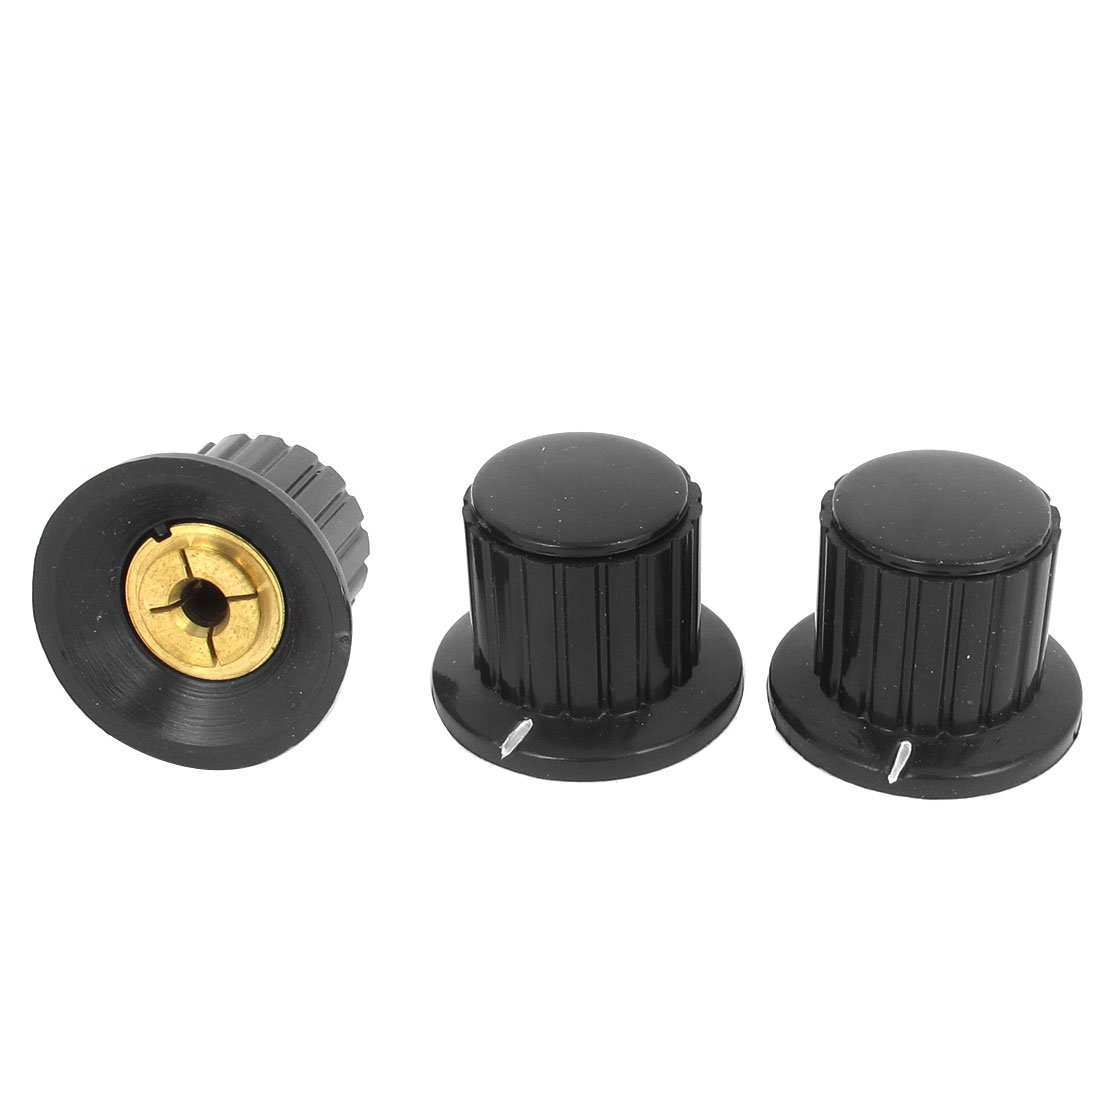 Uxcell 3 Pcs Black Ribbed Grip Free shipping on posting reviews Co Shaft 4 Split mm 2021 new Potentiometer